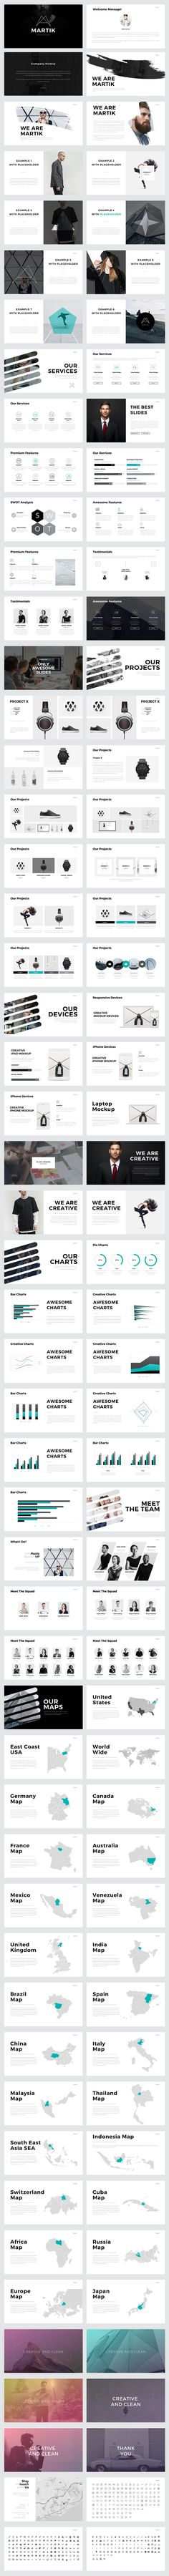 Martik PowerPoint Template: presentation design with a minimal, yet gorgeous layout